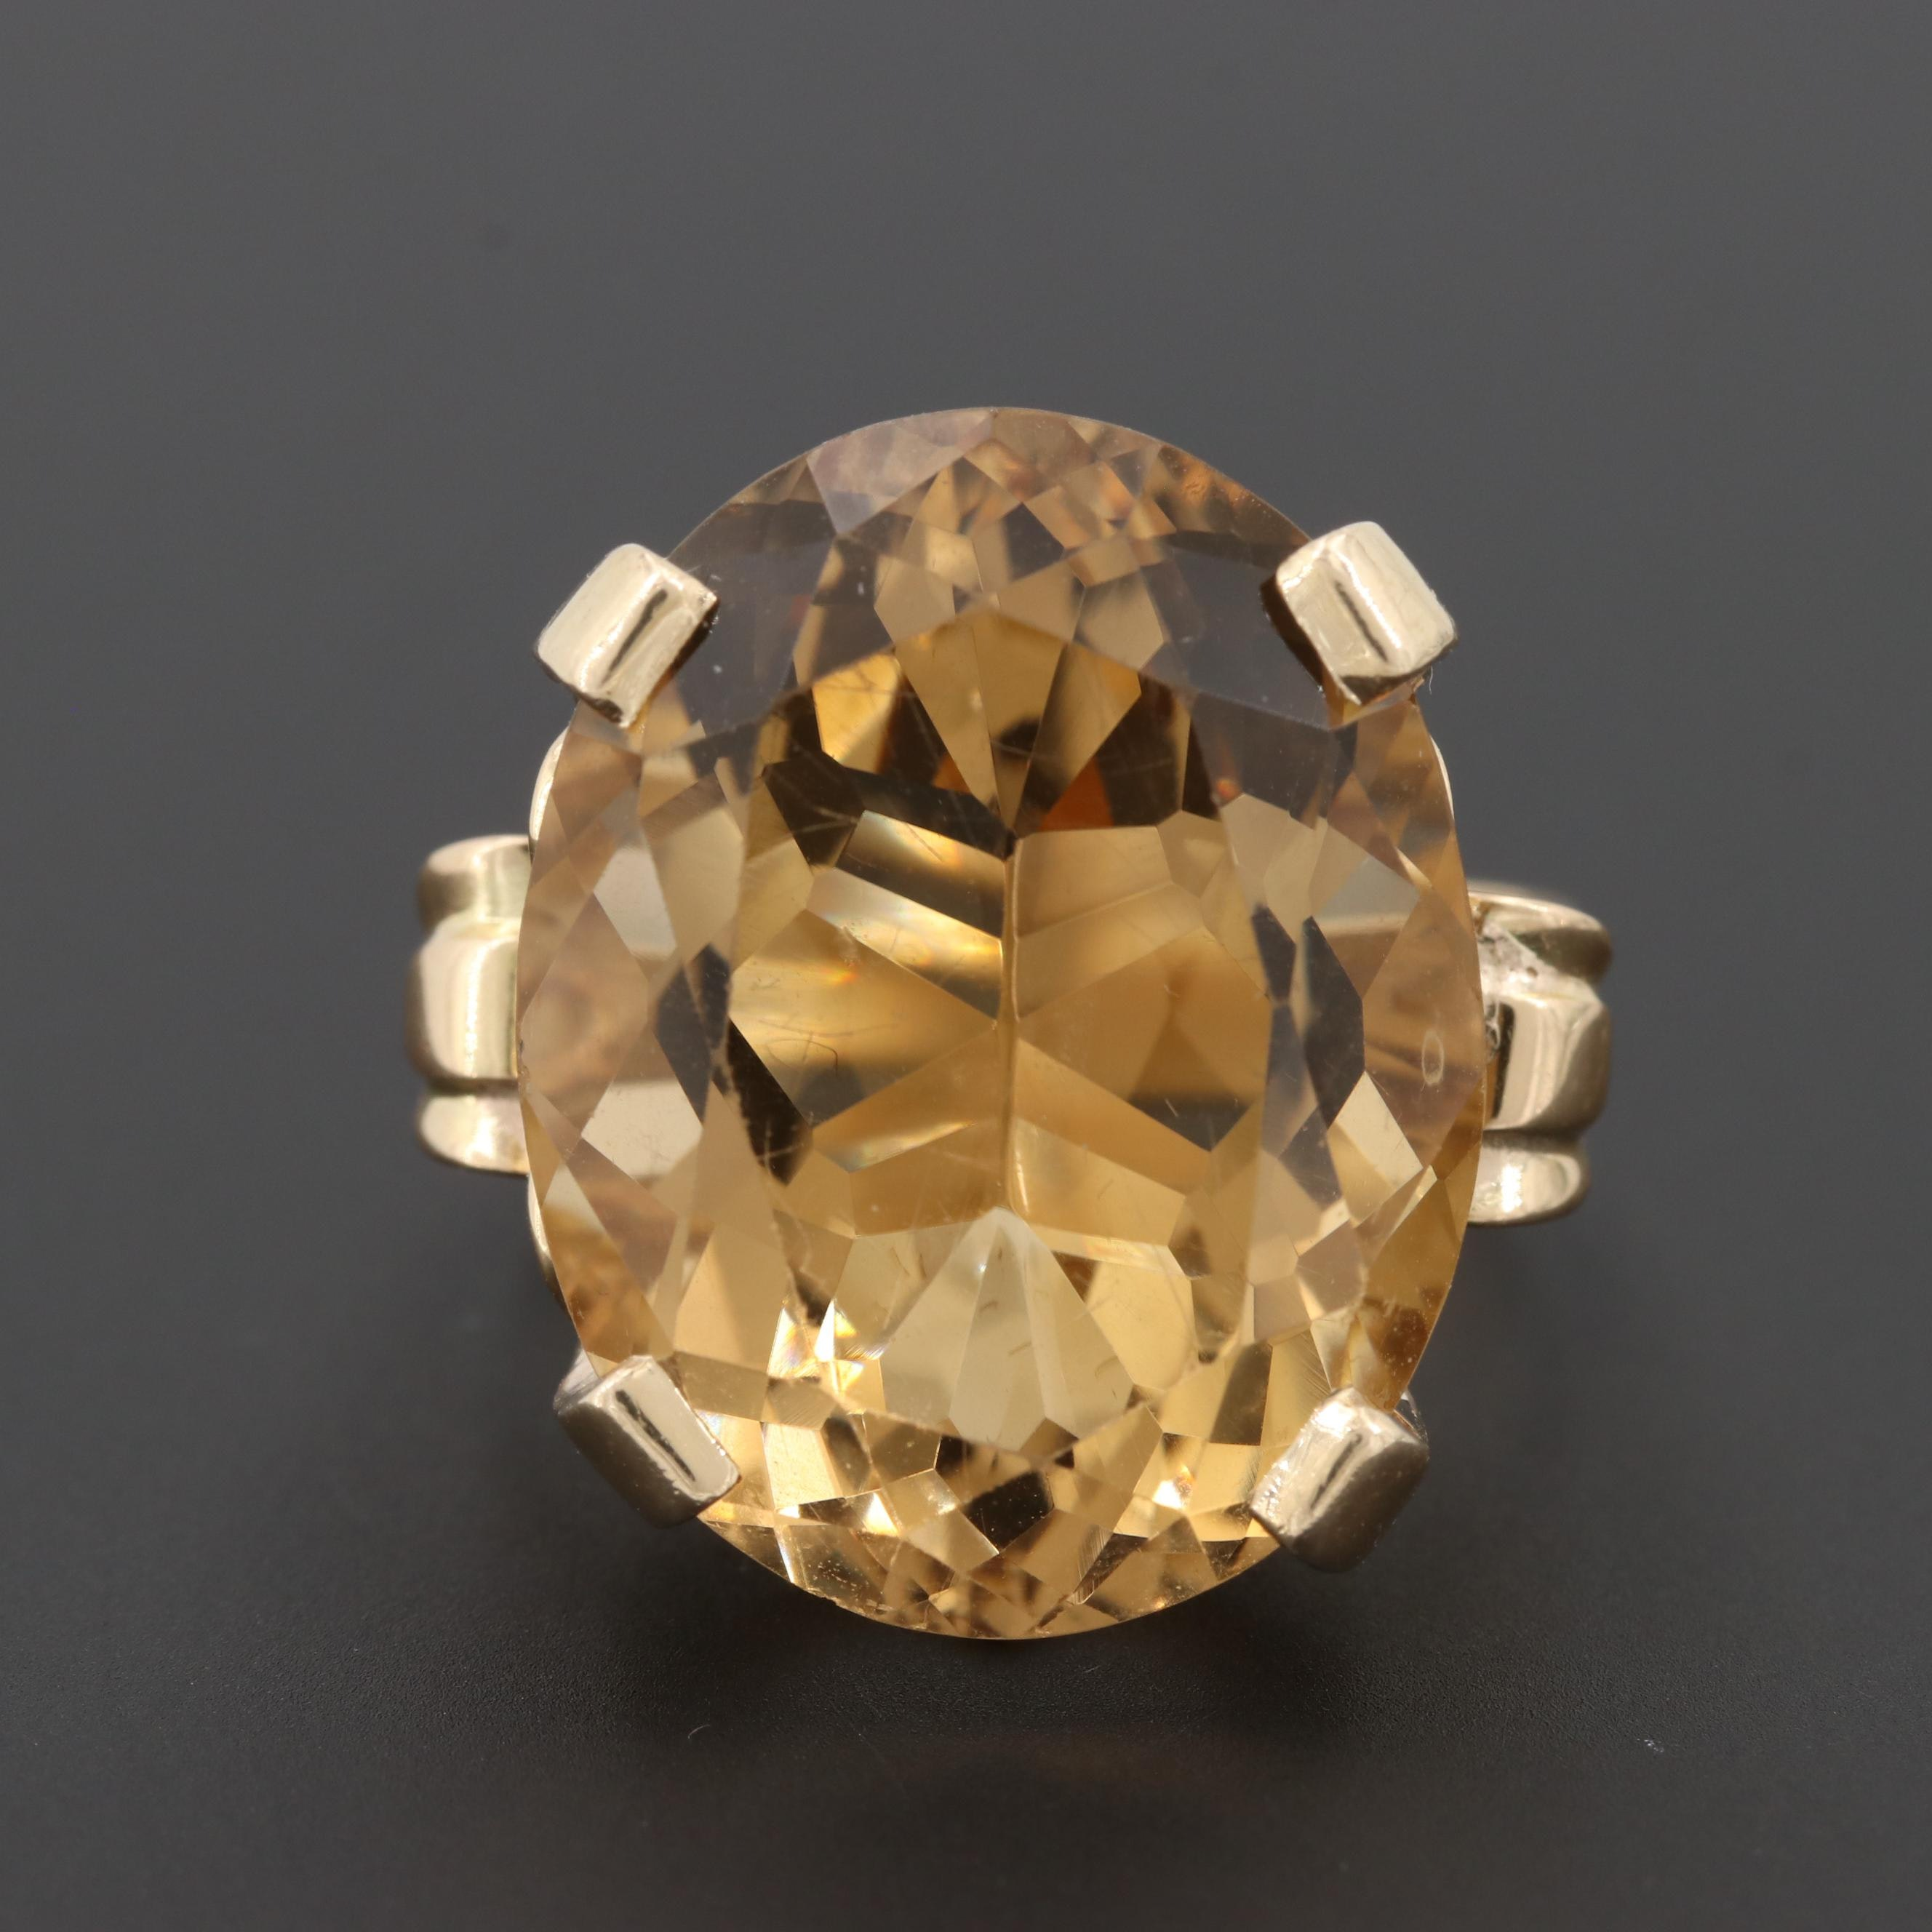 Vintage 14K Yellow Gold 21.87 CT Citrine Ring in Openwork Setting